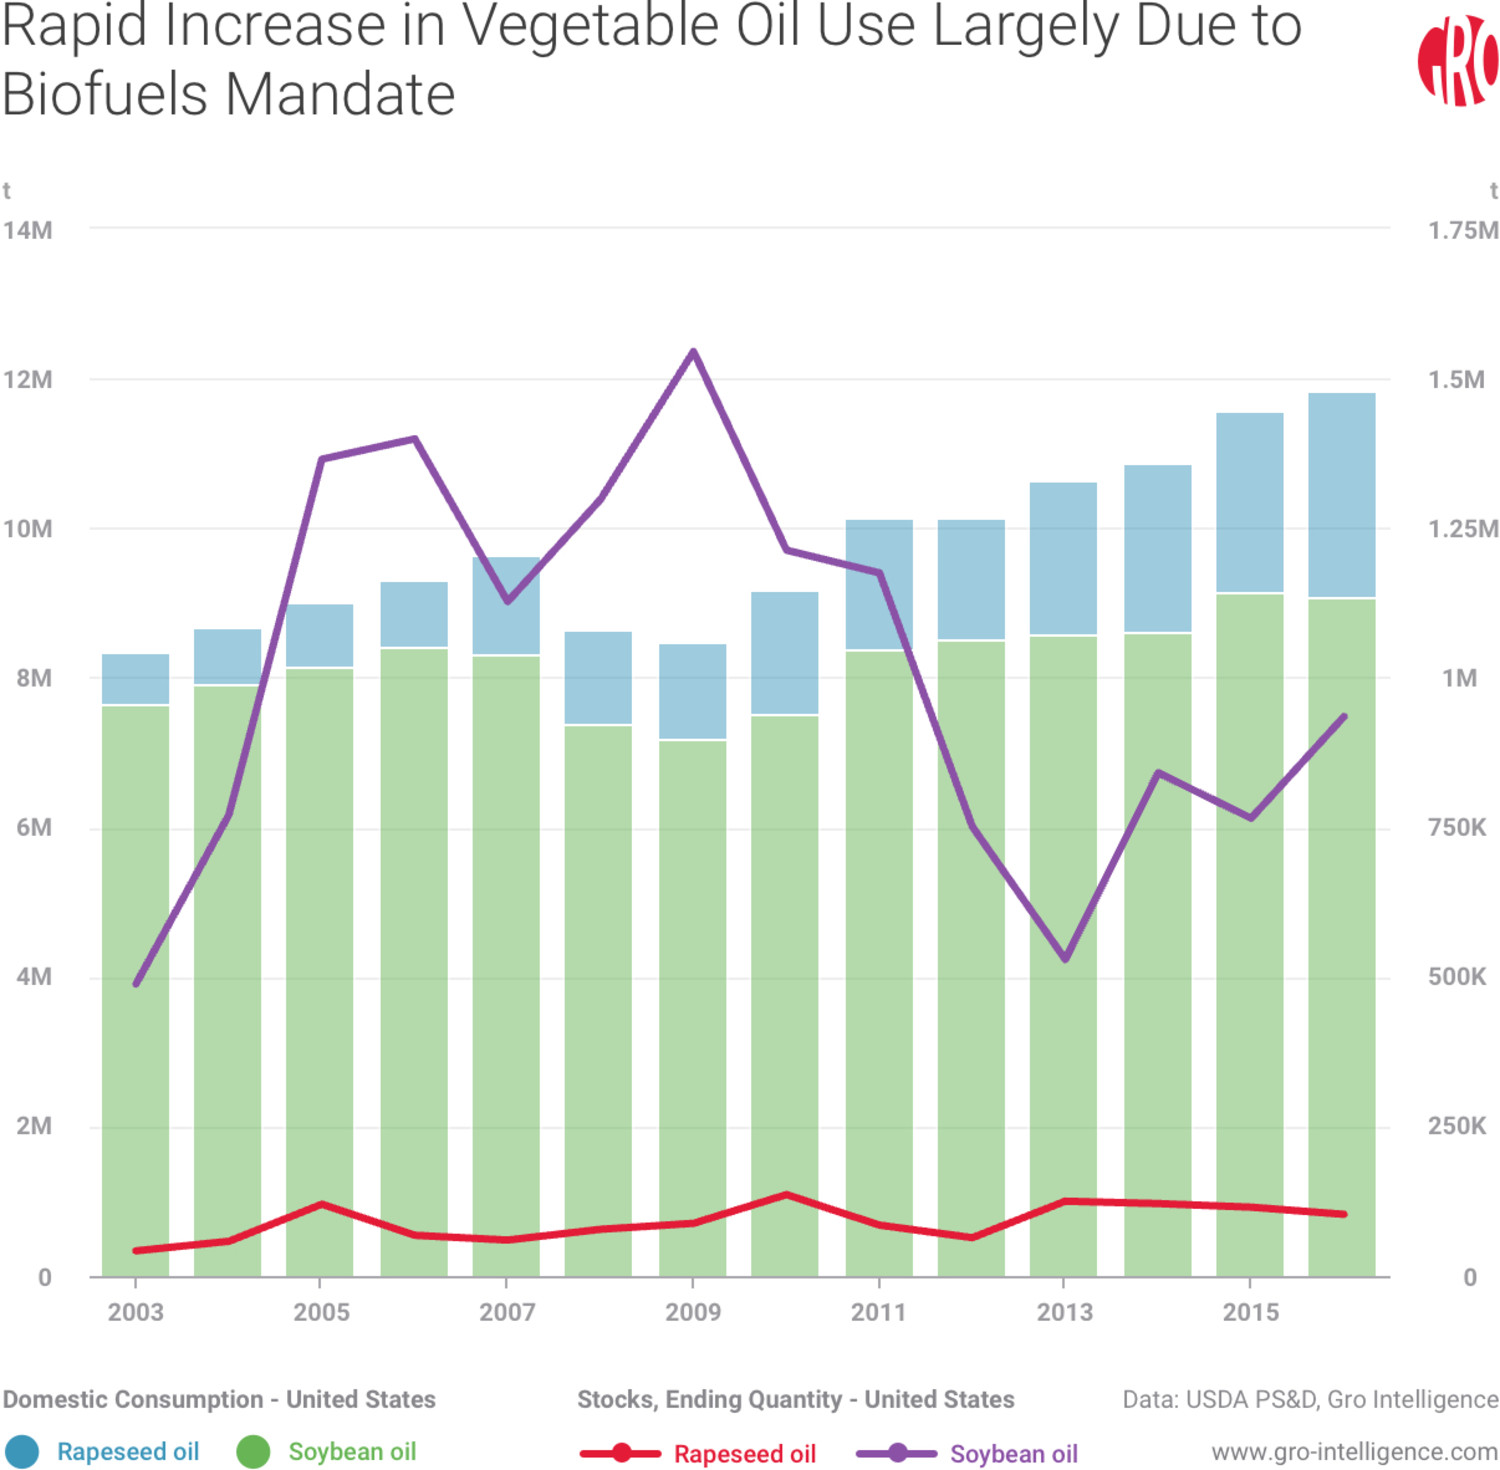 Rapid Increase in Vegetable Oil Use Largely Due to Biofuels Mandate